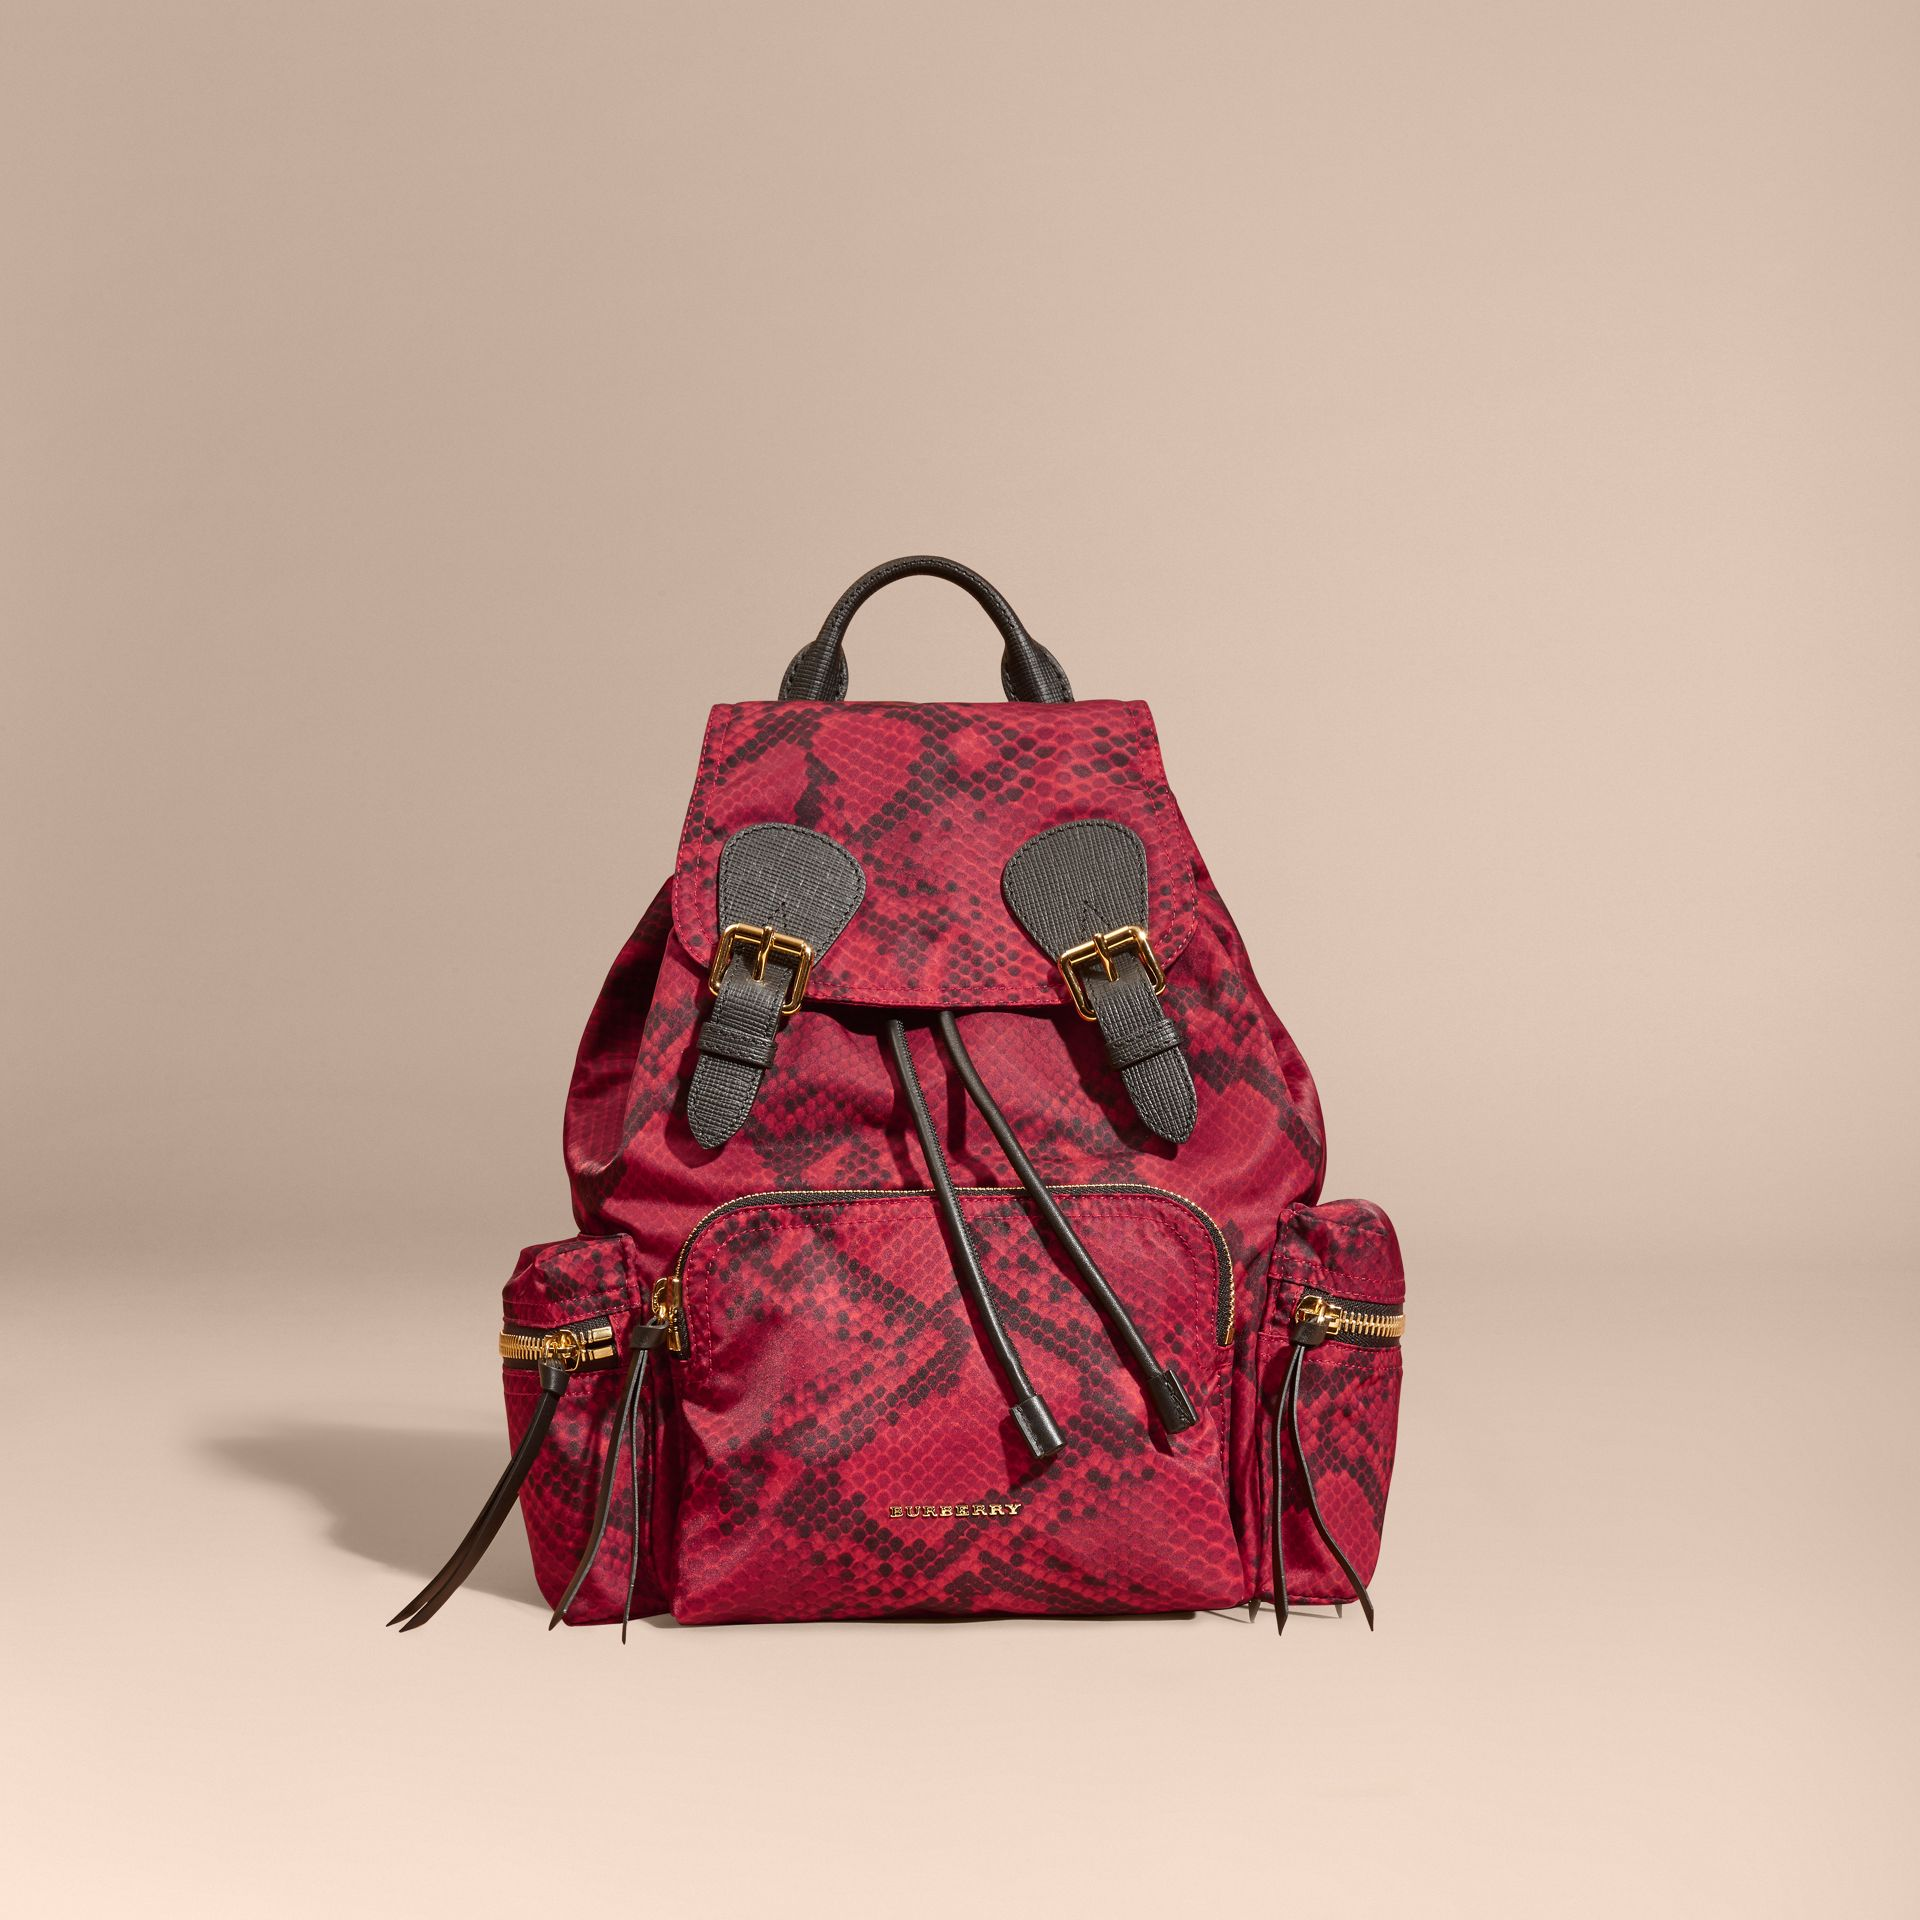 Burgundy red The Medium Rucksack in Python Print Nylon and Leather Burgundy Red - gallery image 8